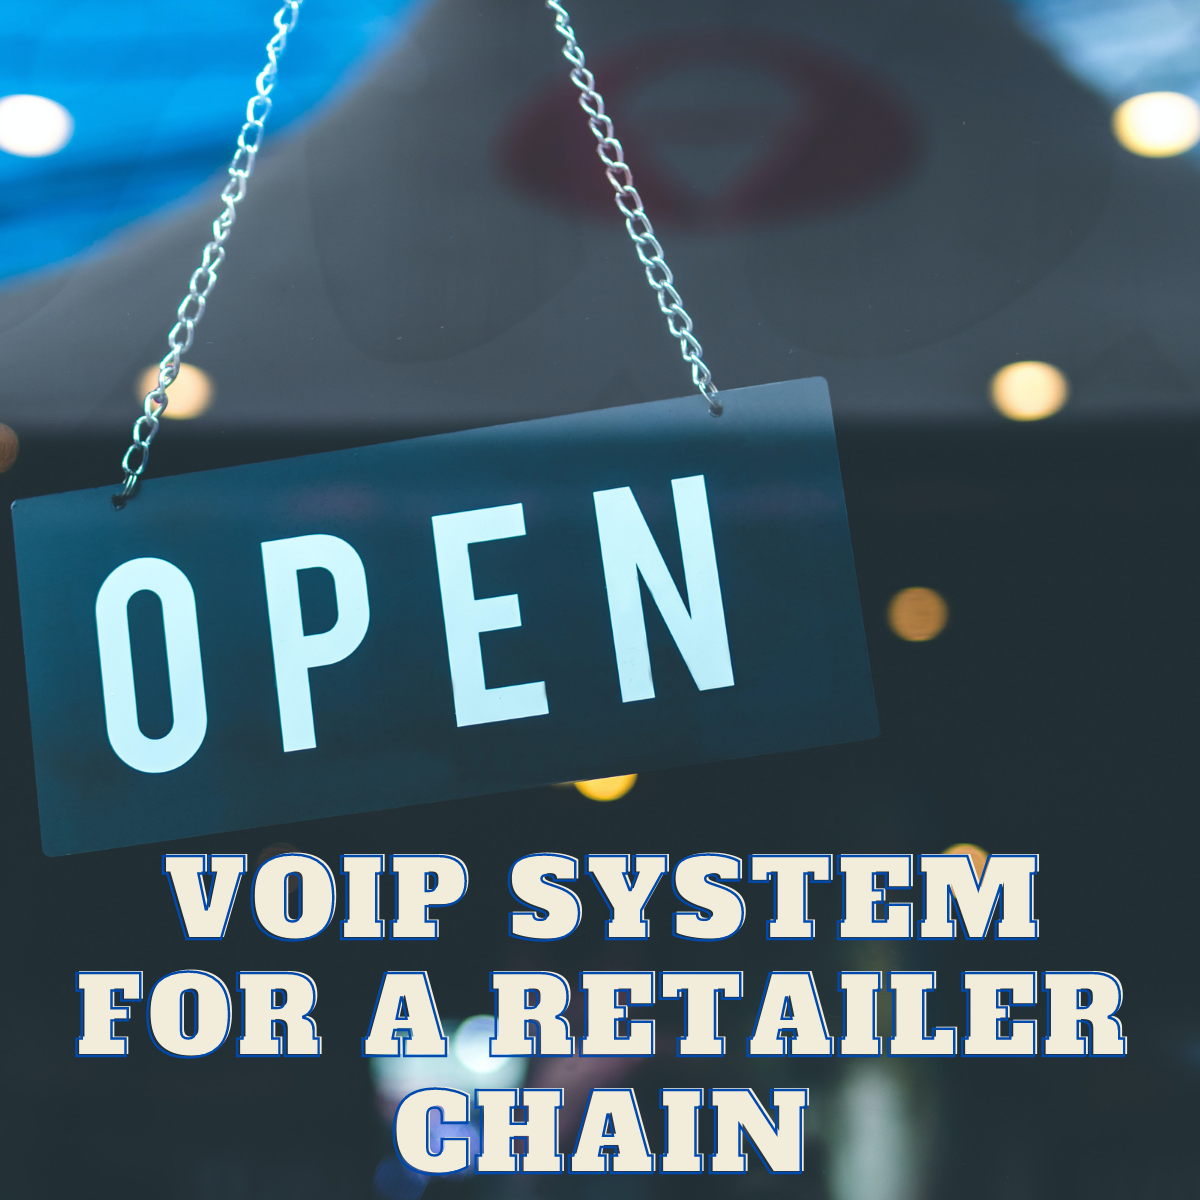 Voip System For A Retailer Chain